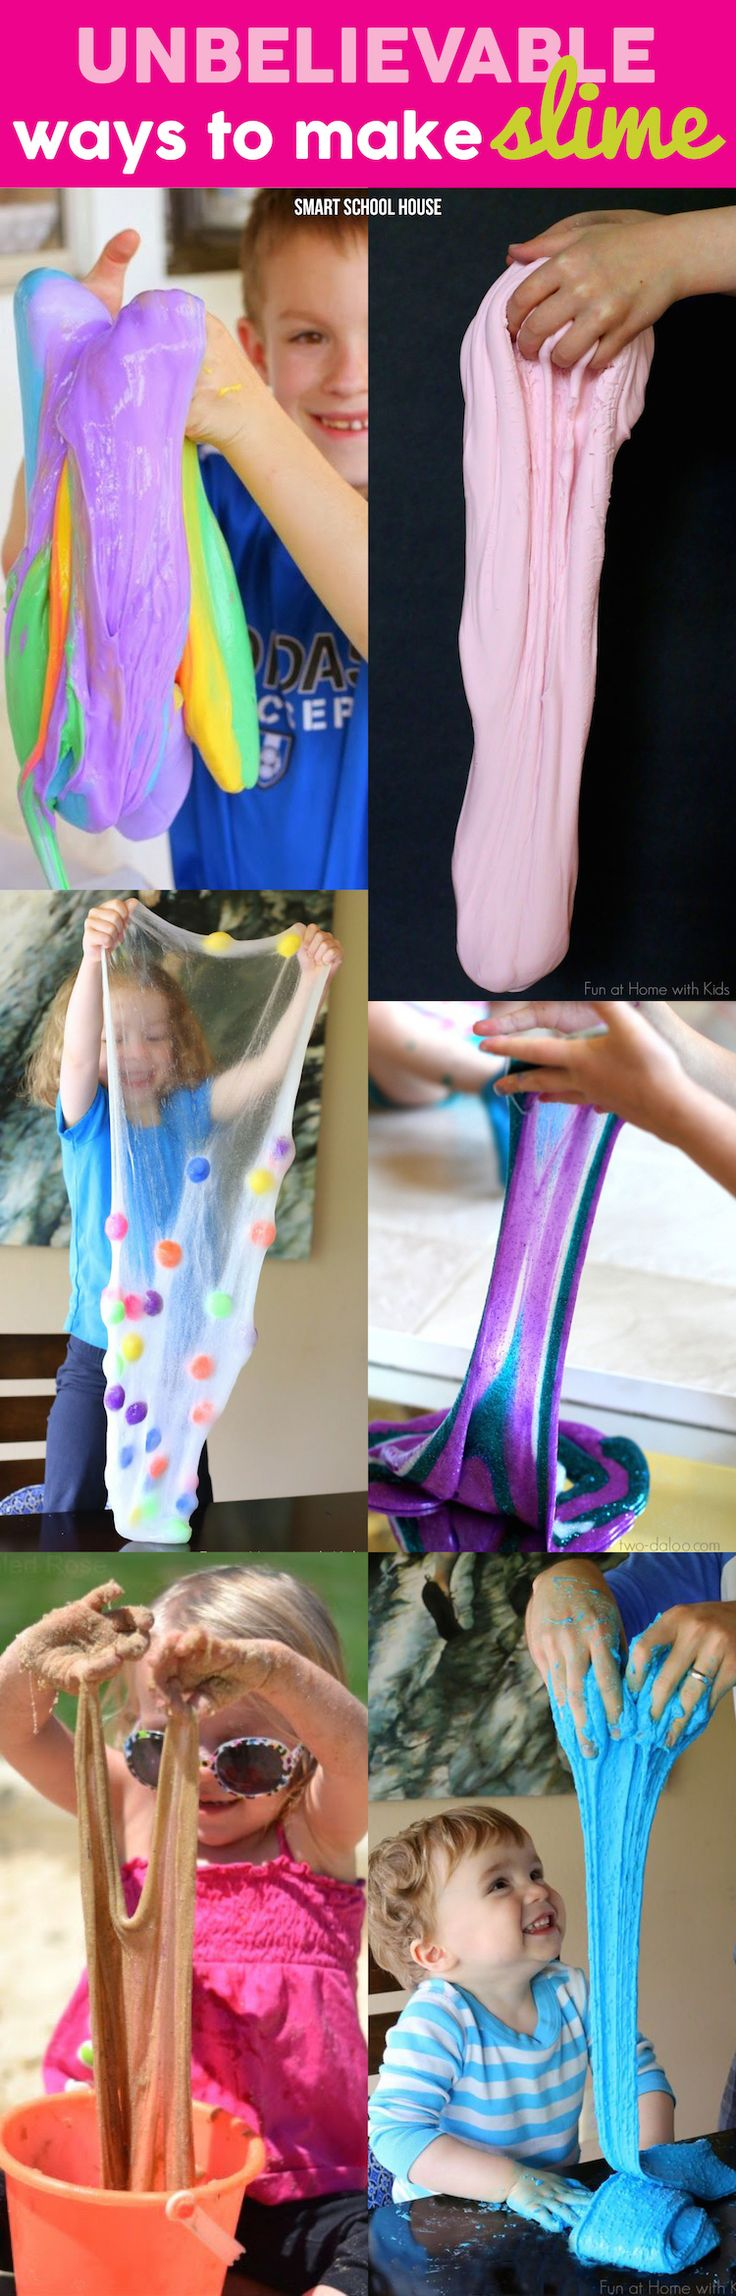 Ways to Make Slime: how to make rainbow slime, how to make edible slime, how to make sand slime, and more!